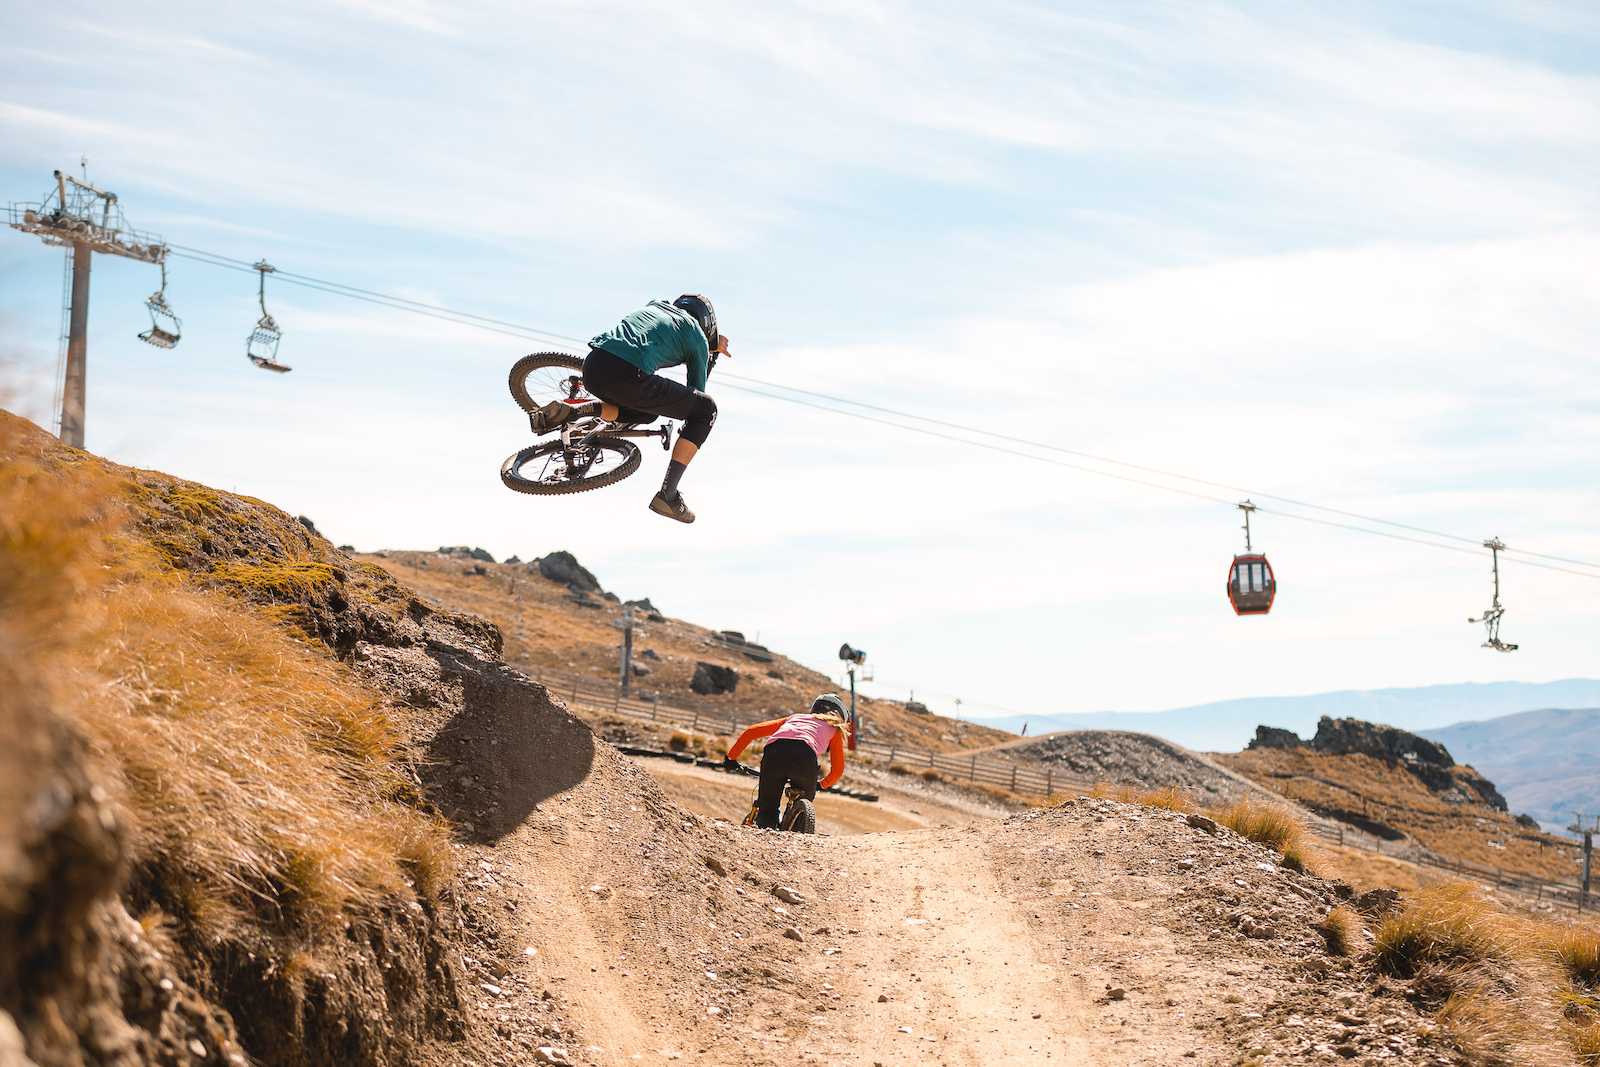 Can t forget about one of the key offerings of Cardrona. The fact it s lift assisted so you can lap all day without having to pedal if that s your thing.